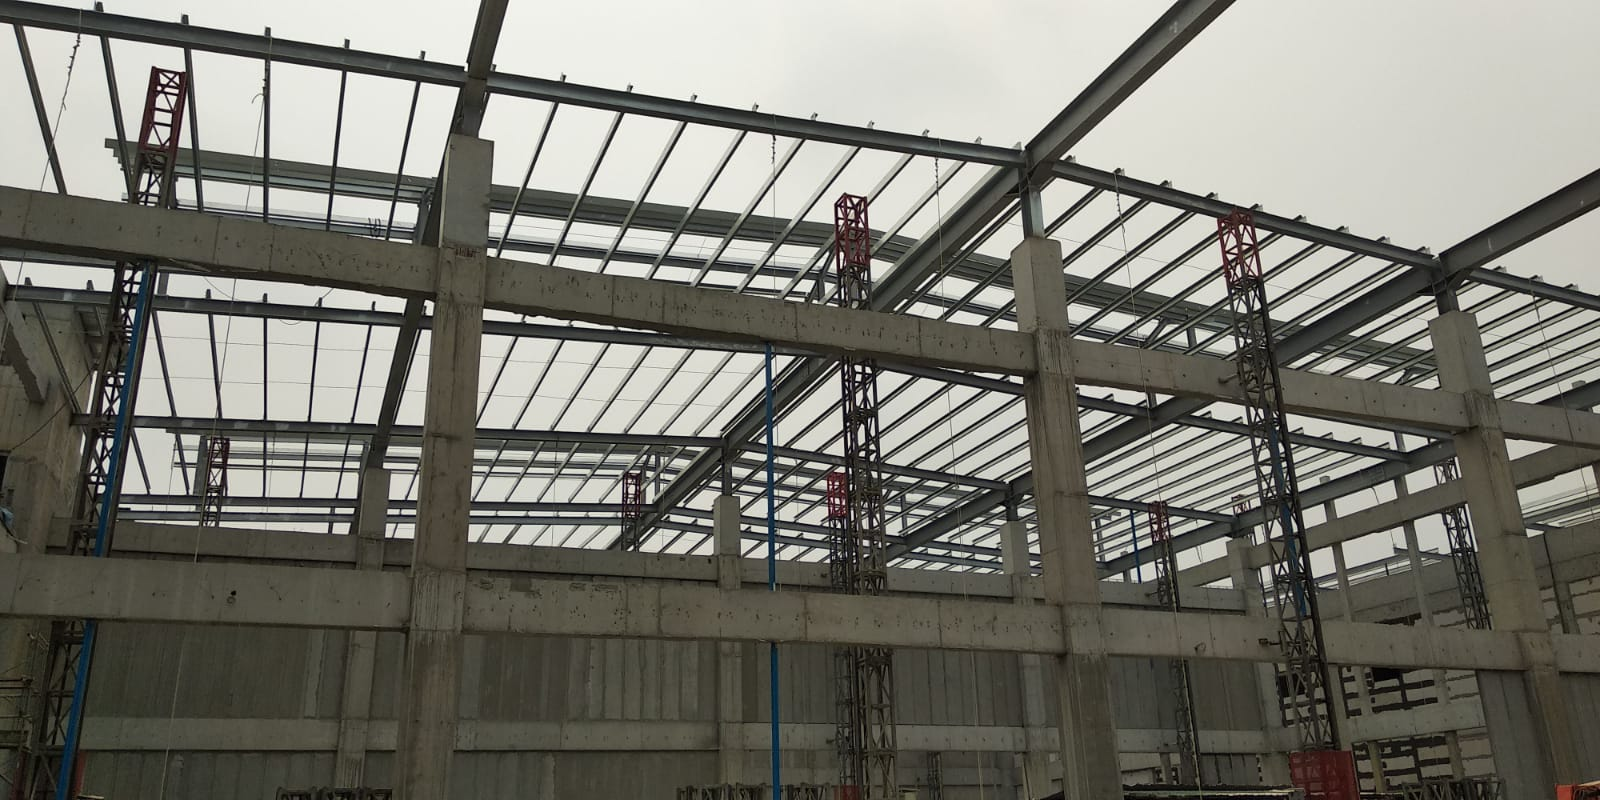 Warehouse%20Truss%20Structure%20at%20Tuas%20